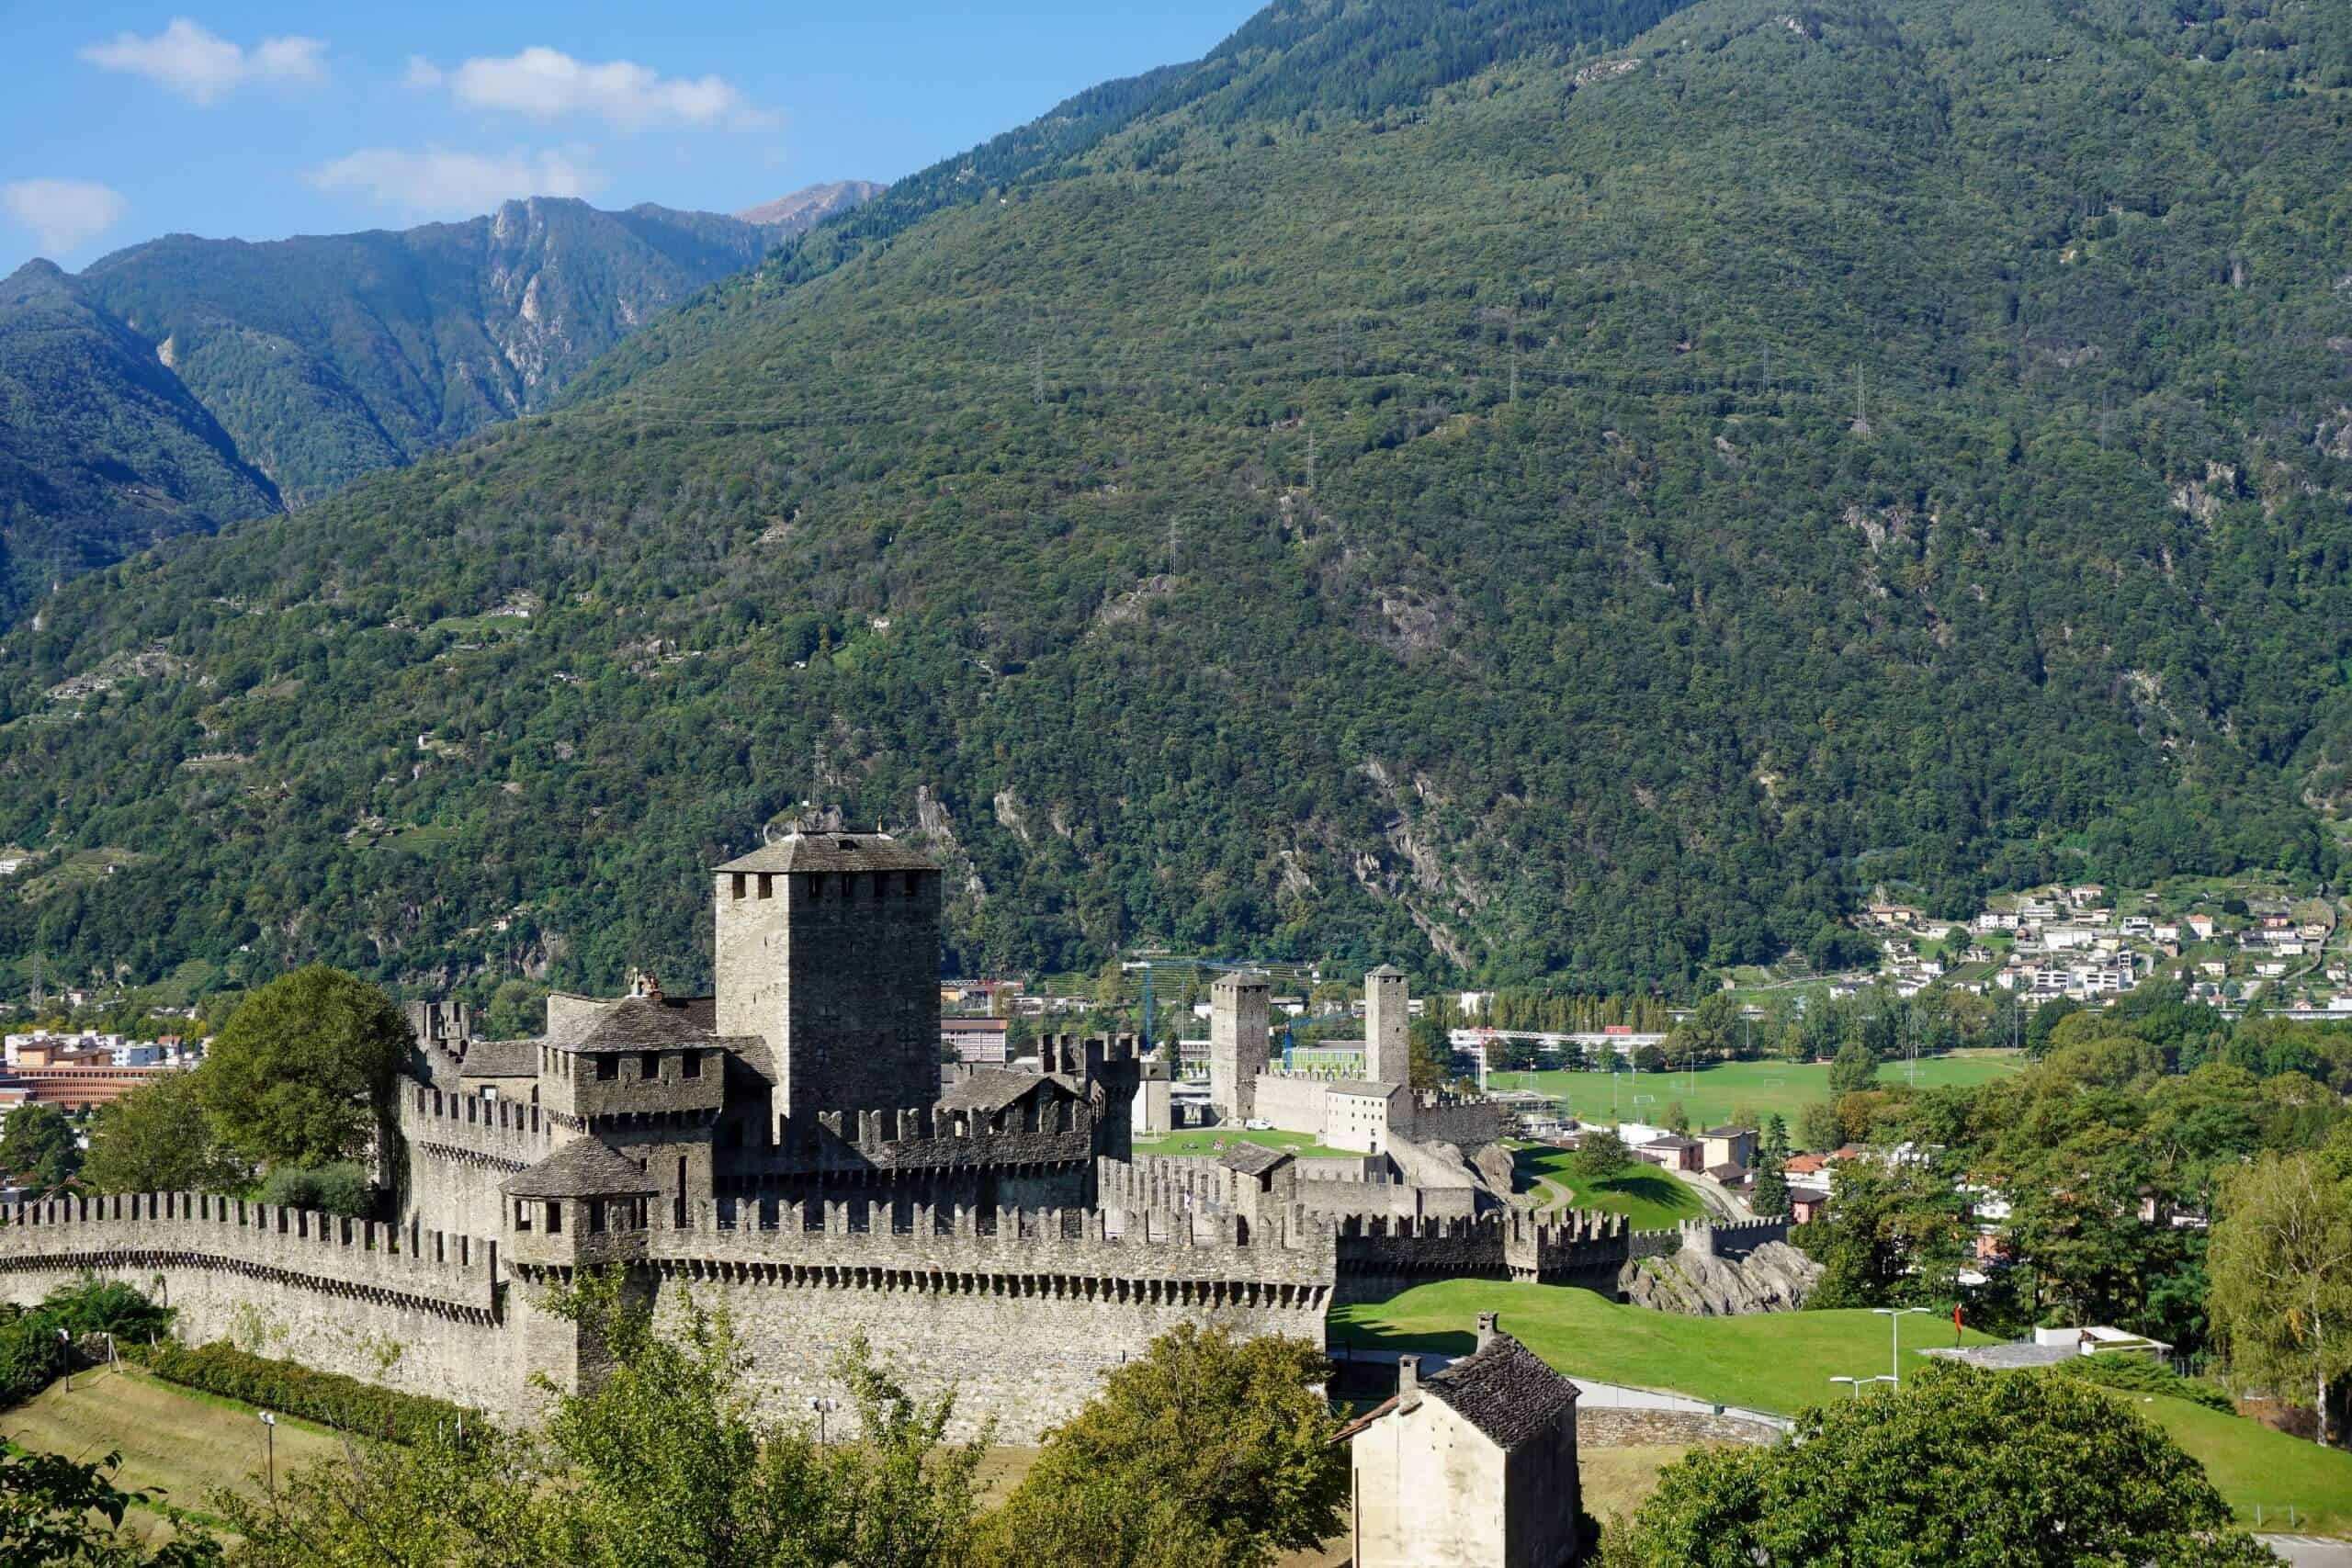 Castles of Bellinzona, Switzerland